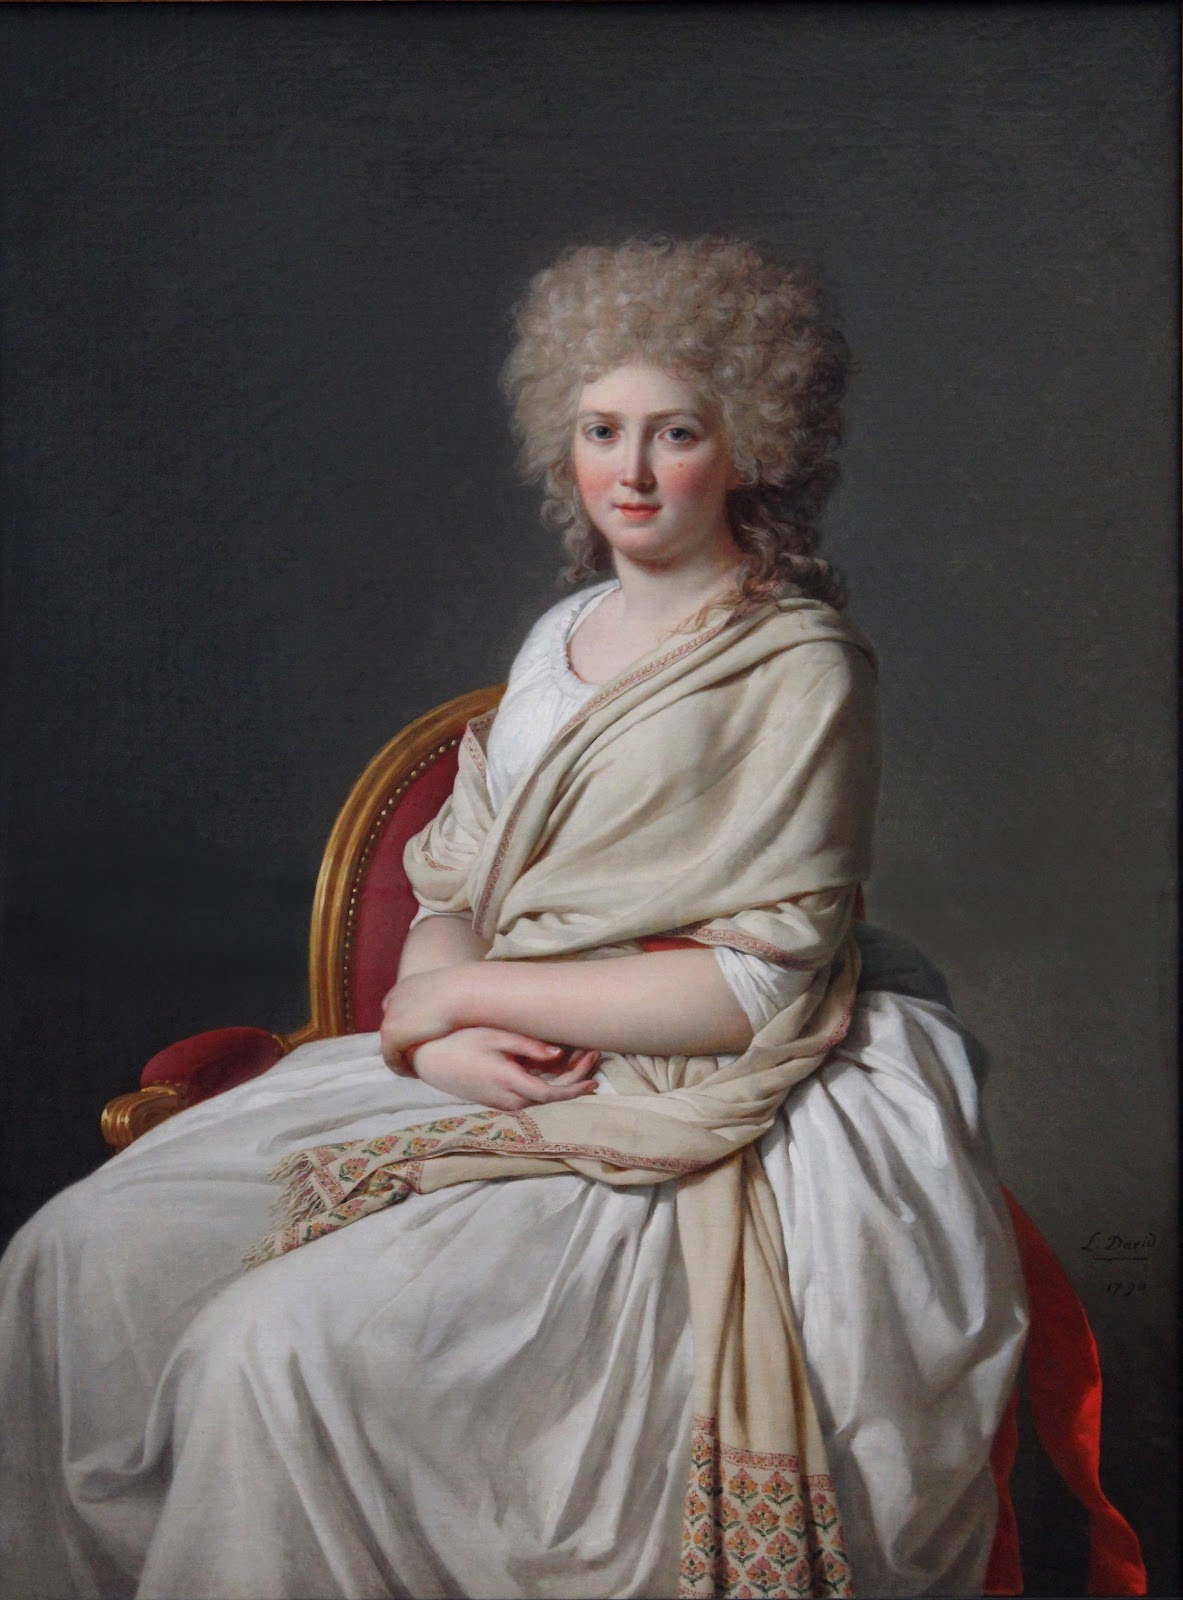 Retrato de Anne-Marie-Louise Thelusson 1790